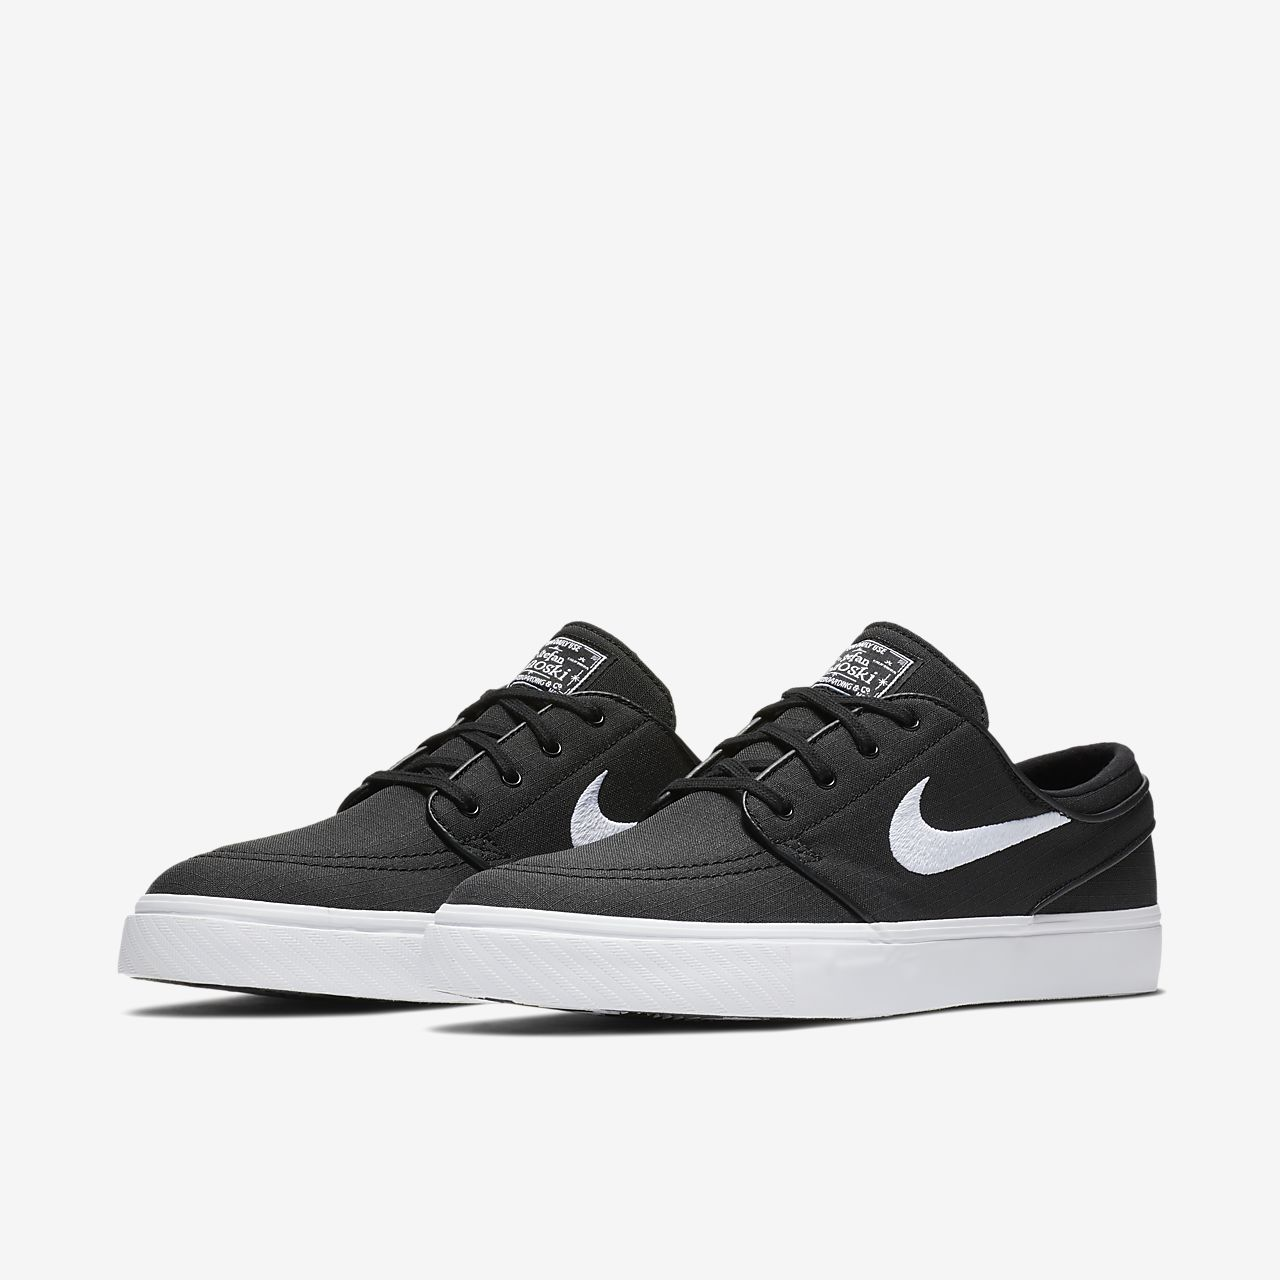 nike sb zoom stefan janoski canvas men 39 s skateboarding shoe. Black Bedroom Furniture Sets. Home Design Ideas